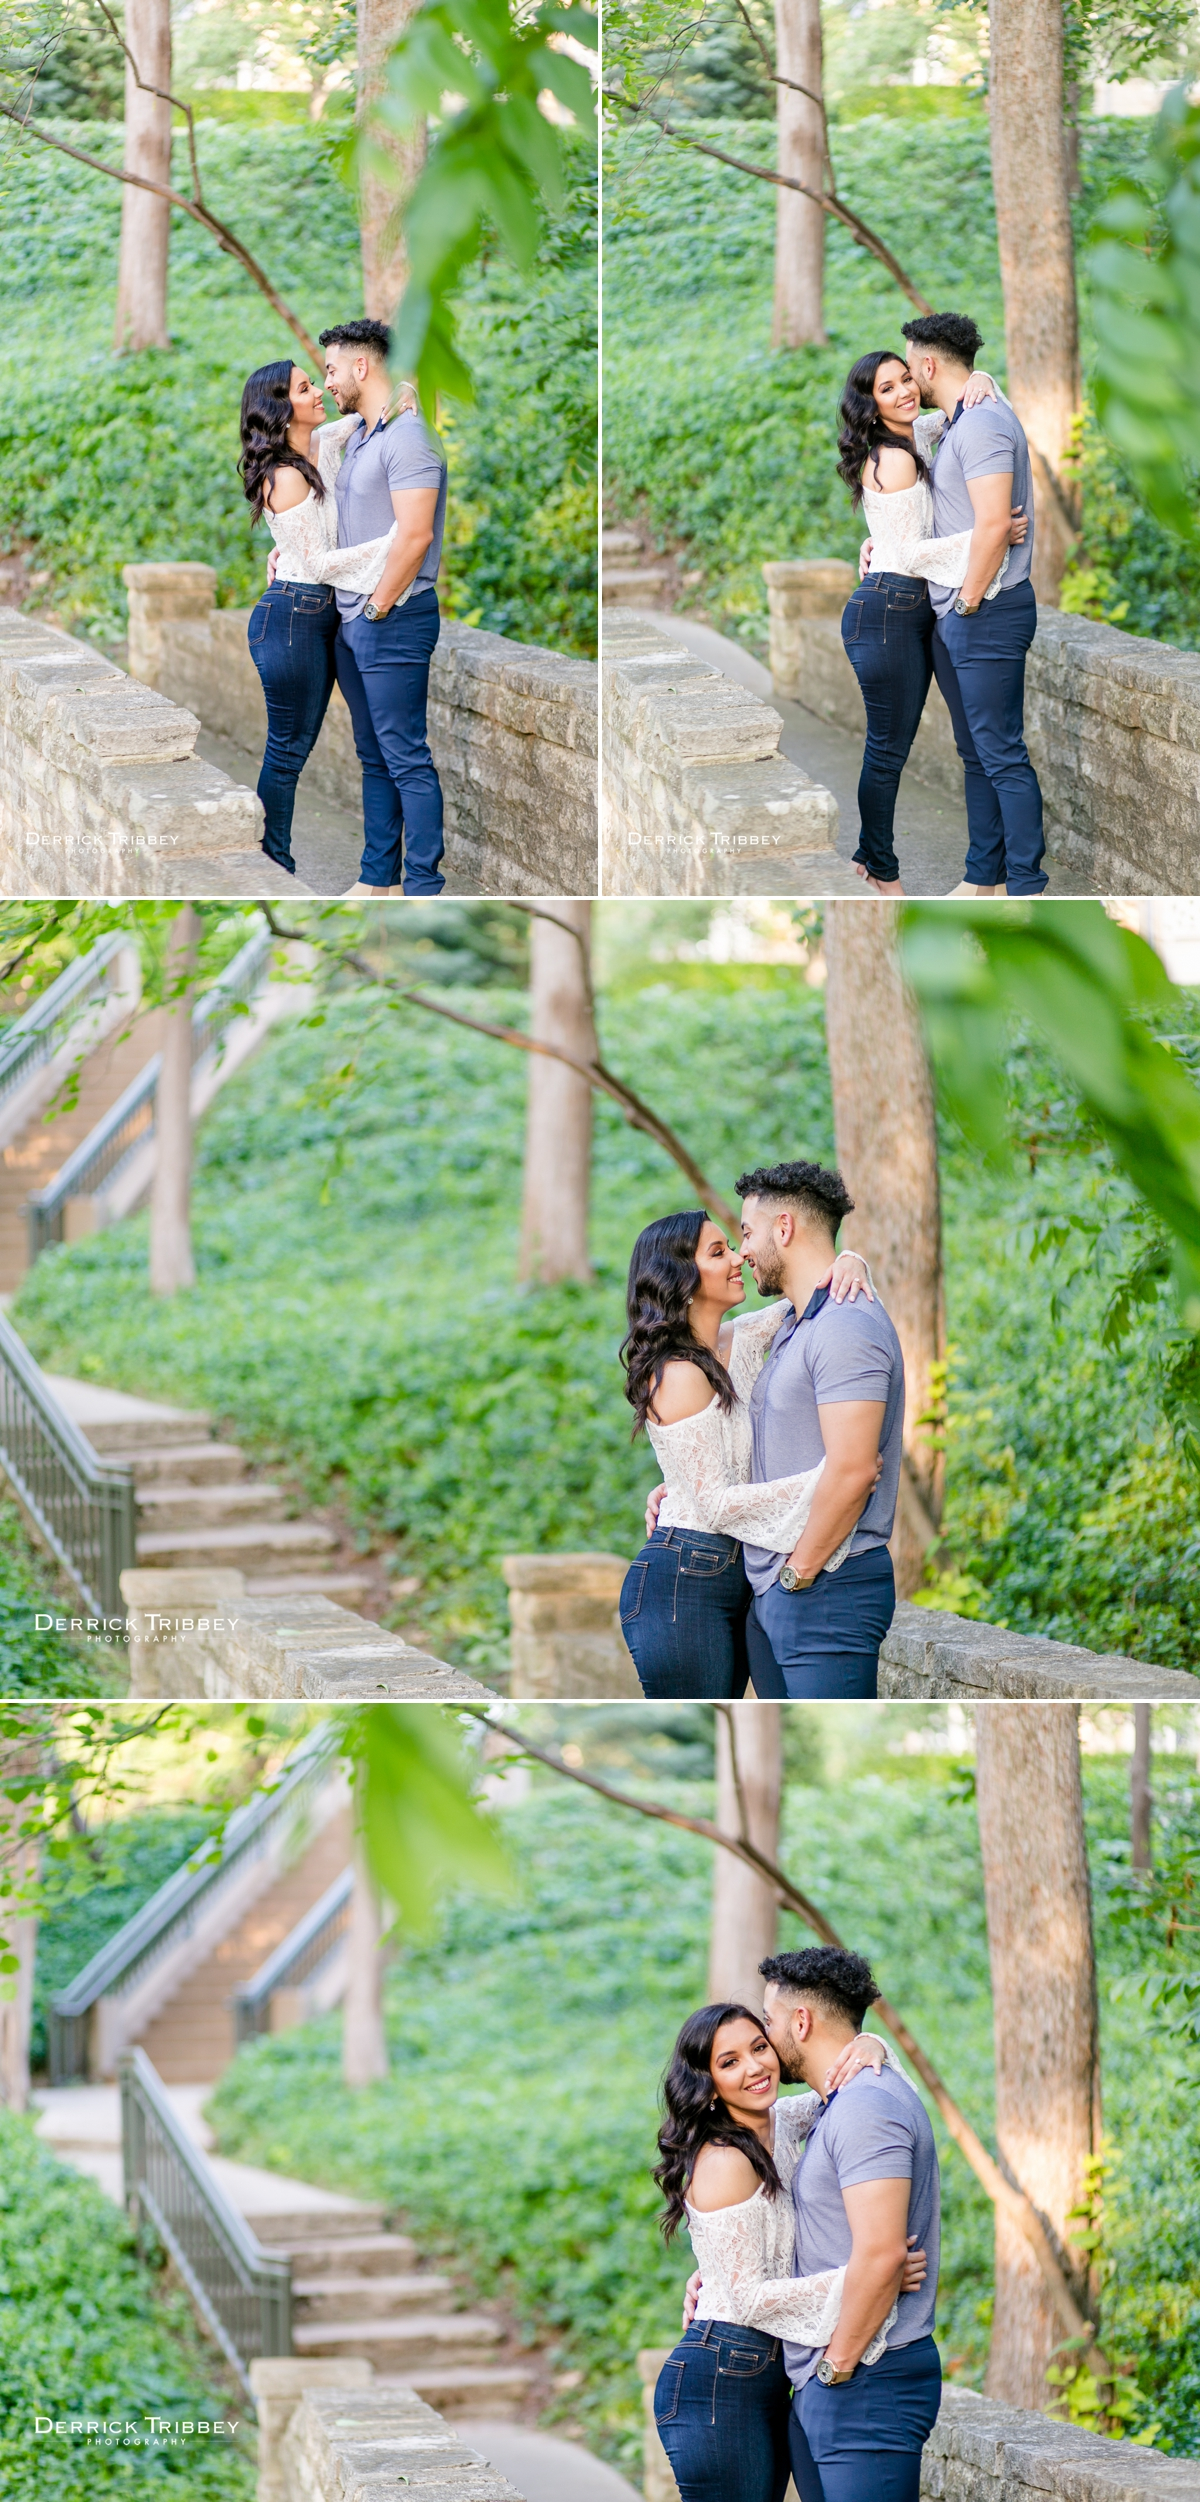 Dallas Couples Photographer